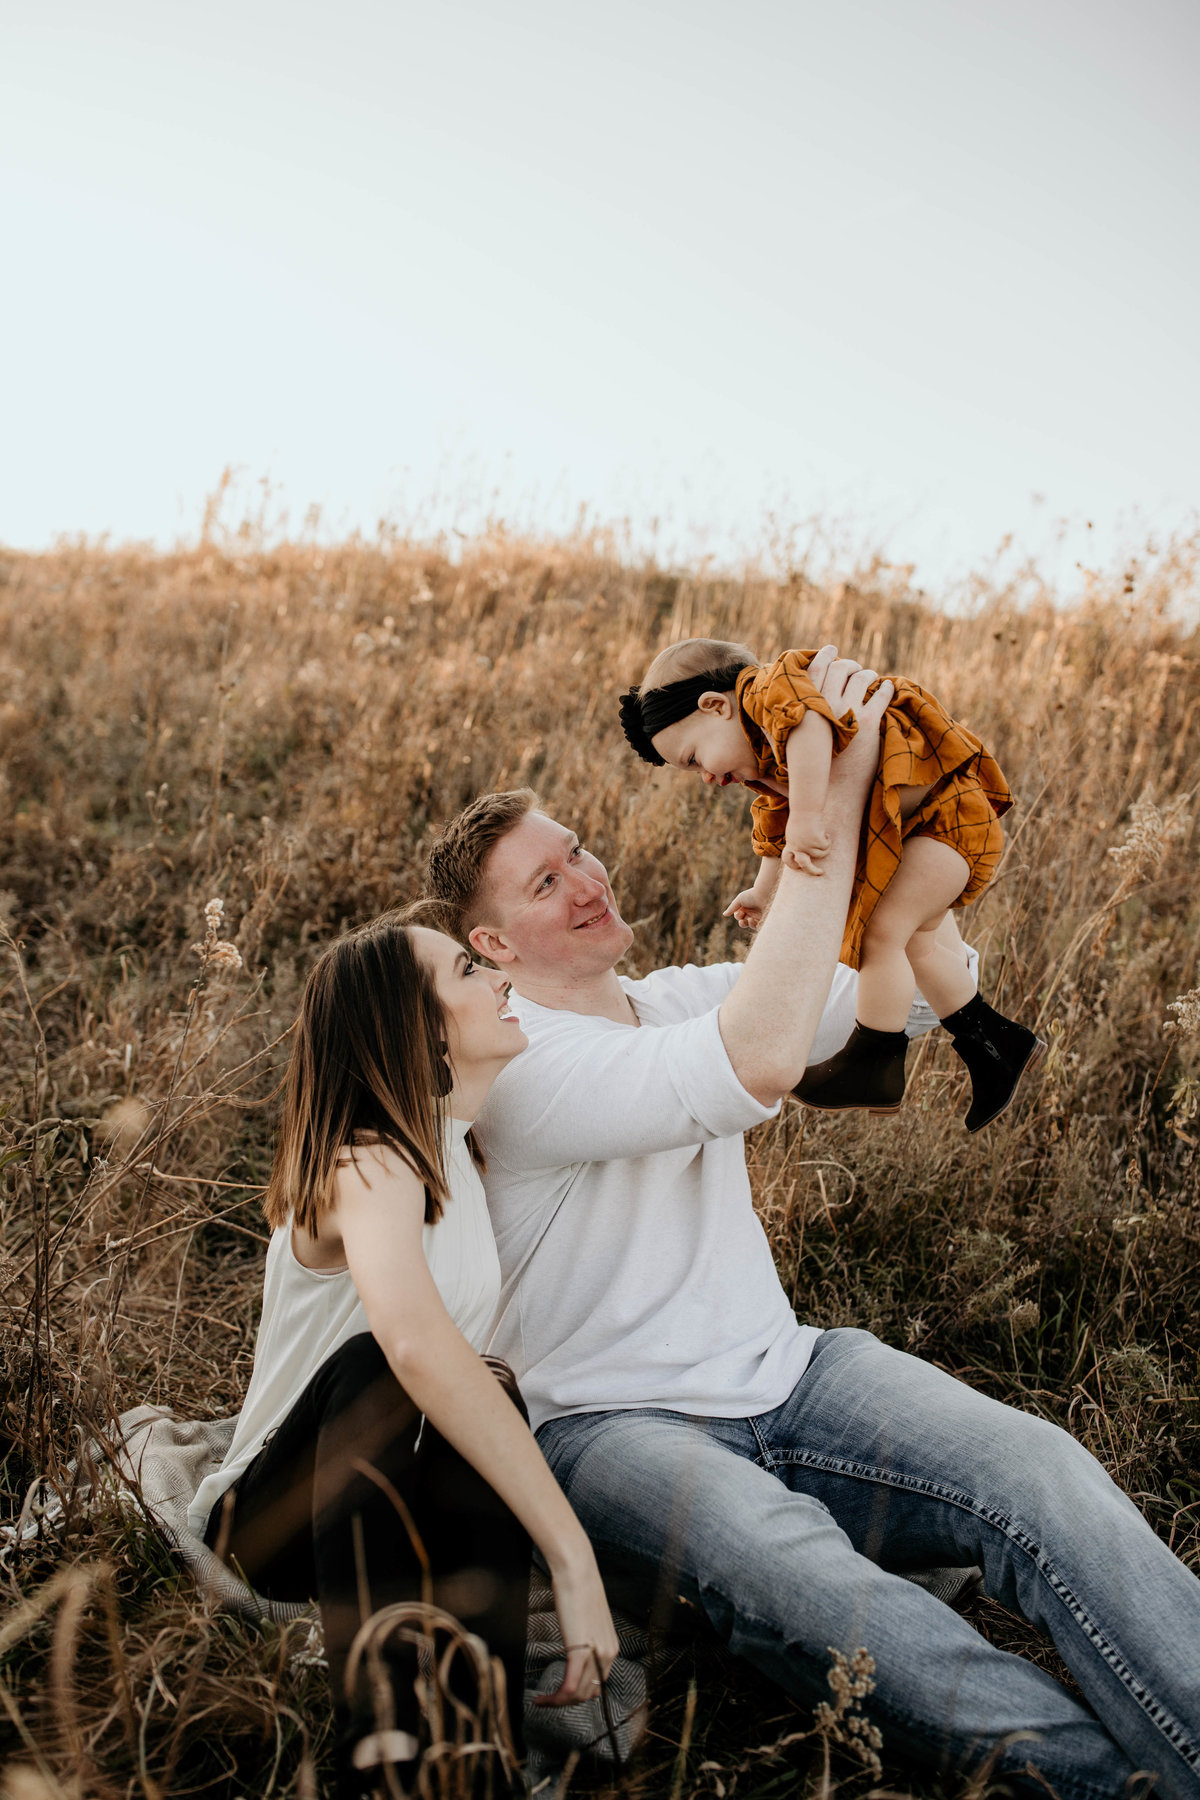 Brenna Walker Family Session Fall 2019 - Wichita Photographer - Andrea Corwin Photography (48 of 100)